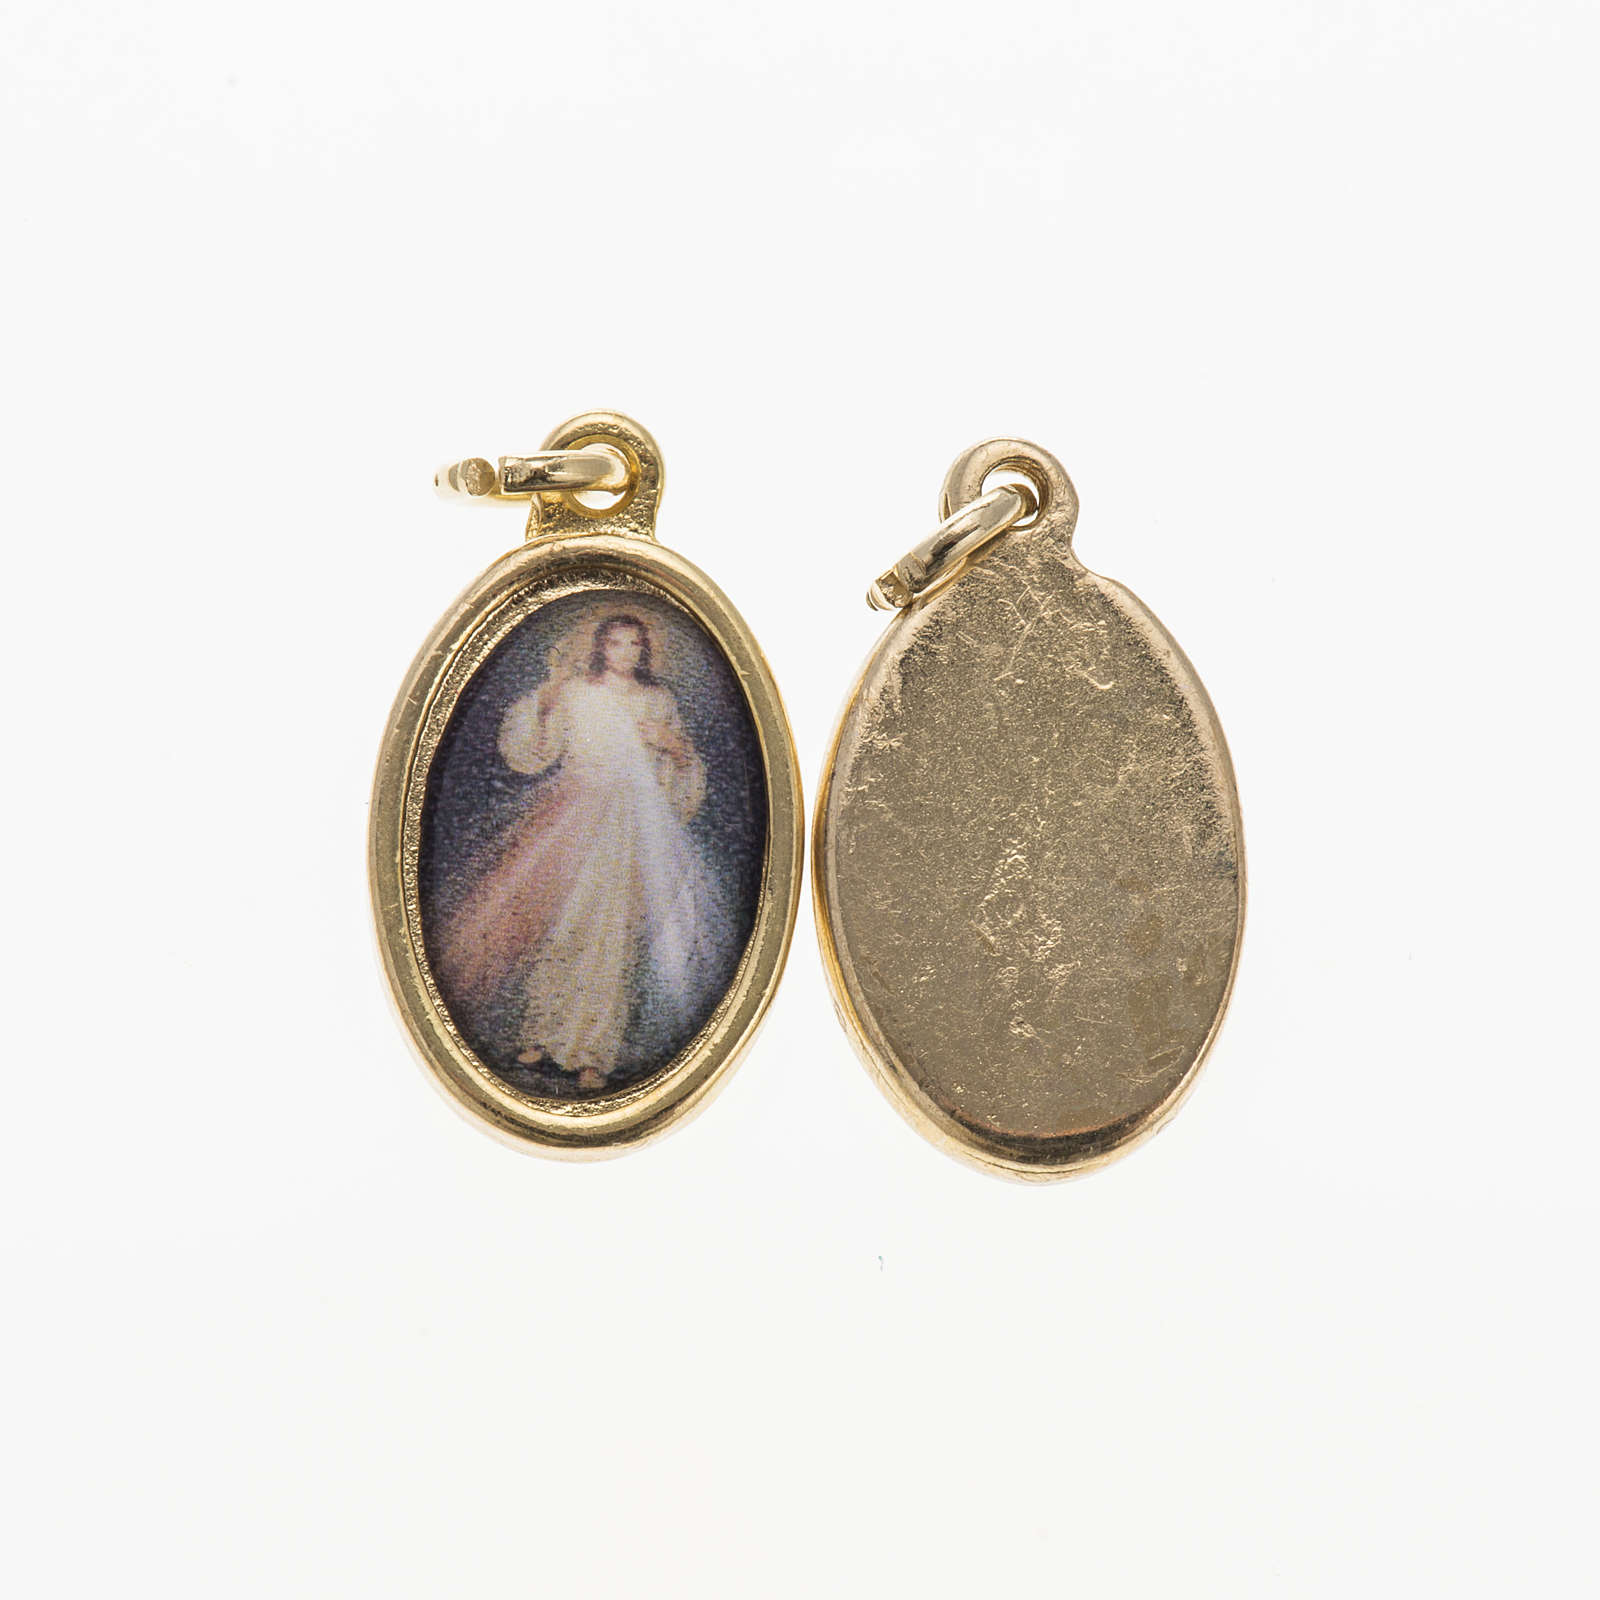 Merciful Jesus medal in golden metal and resin 1.5x1cm 4